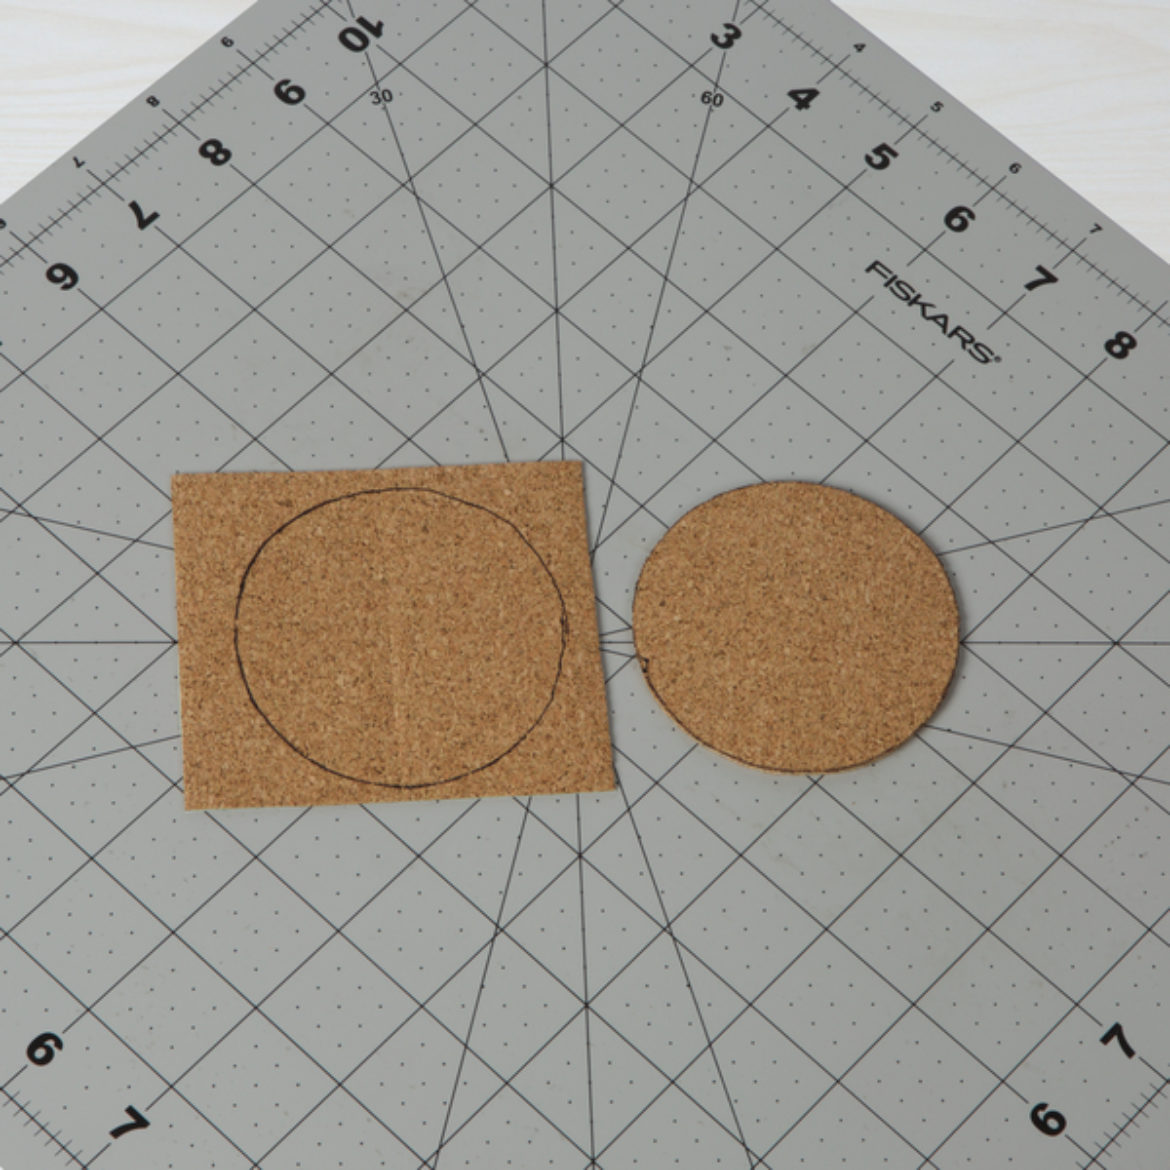 Circle drawn on the square from the previous step. Circle is then cut out.